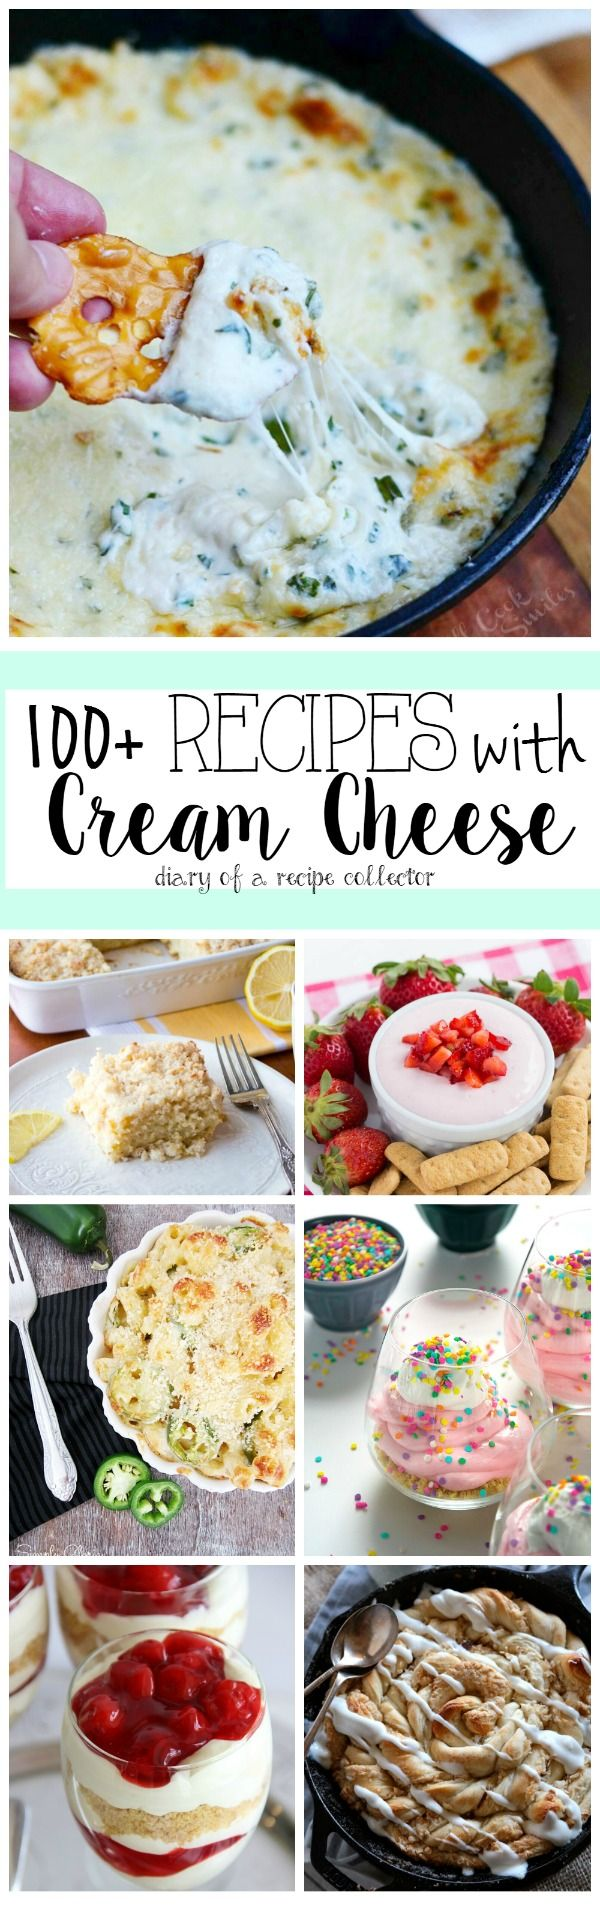 Cream cheese is quite possibly one of the most versatile ingredients in the kitchen.  From sweet to savory to dips, pasta dishes, and sweets, it can do it all.  Have fun browsing through these awesome recipes for some cream cheese inspiration! An InLinkz Link-up